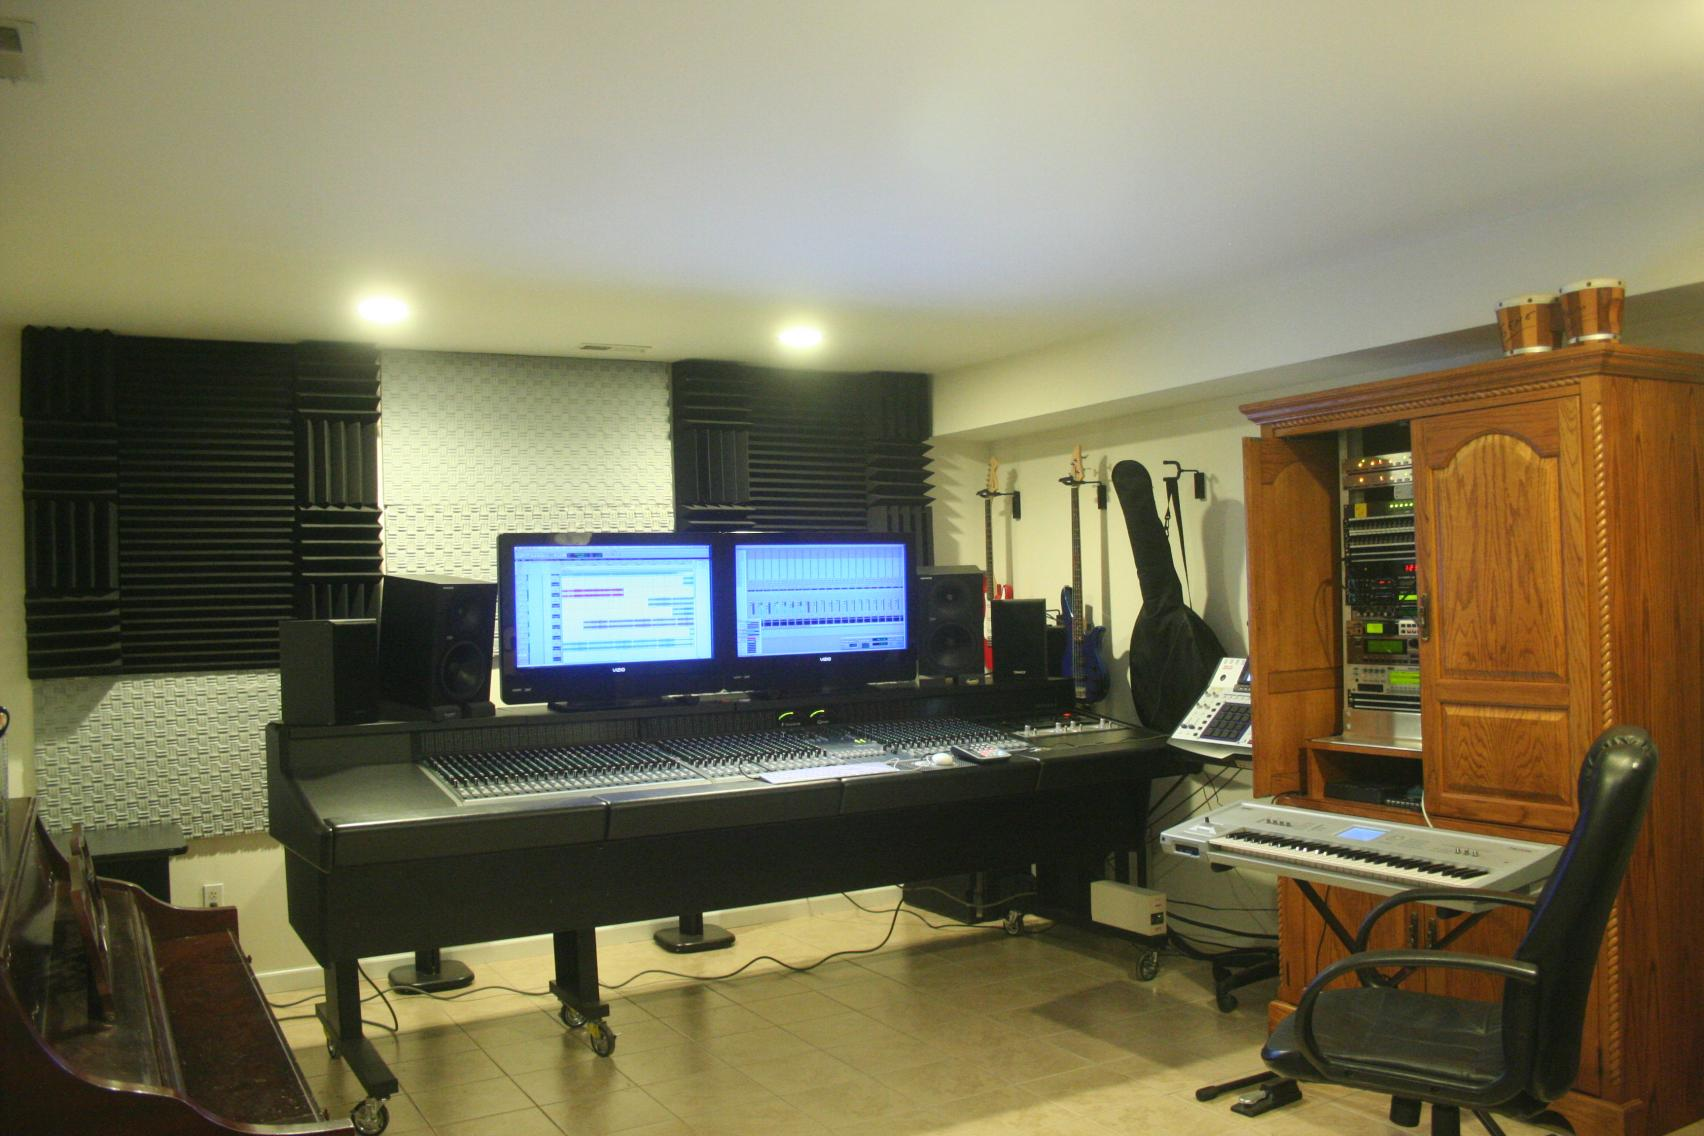 Treating and reducing low end sound transmission with for Reduce sound in a room